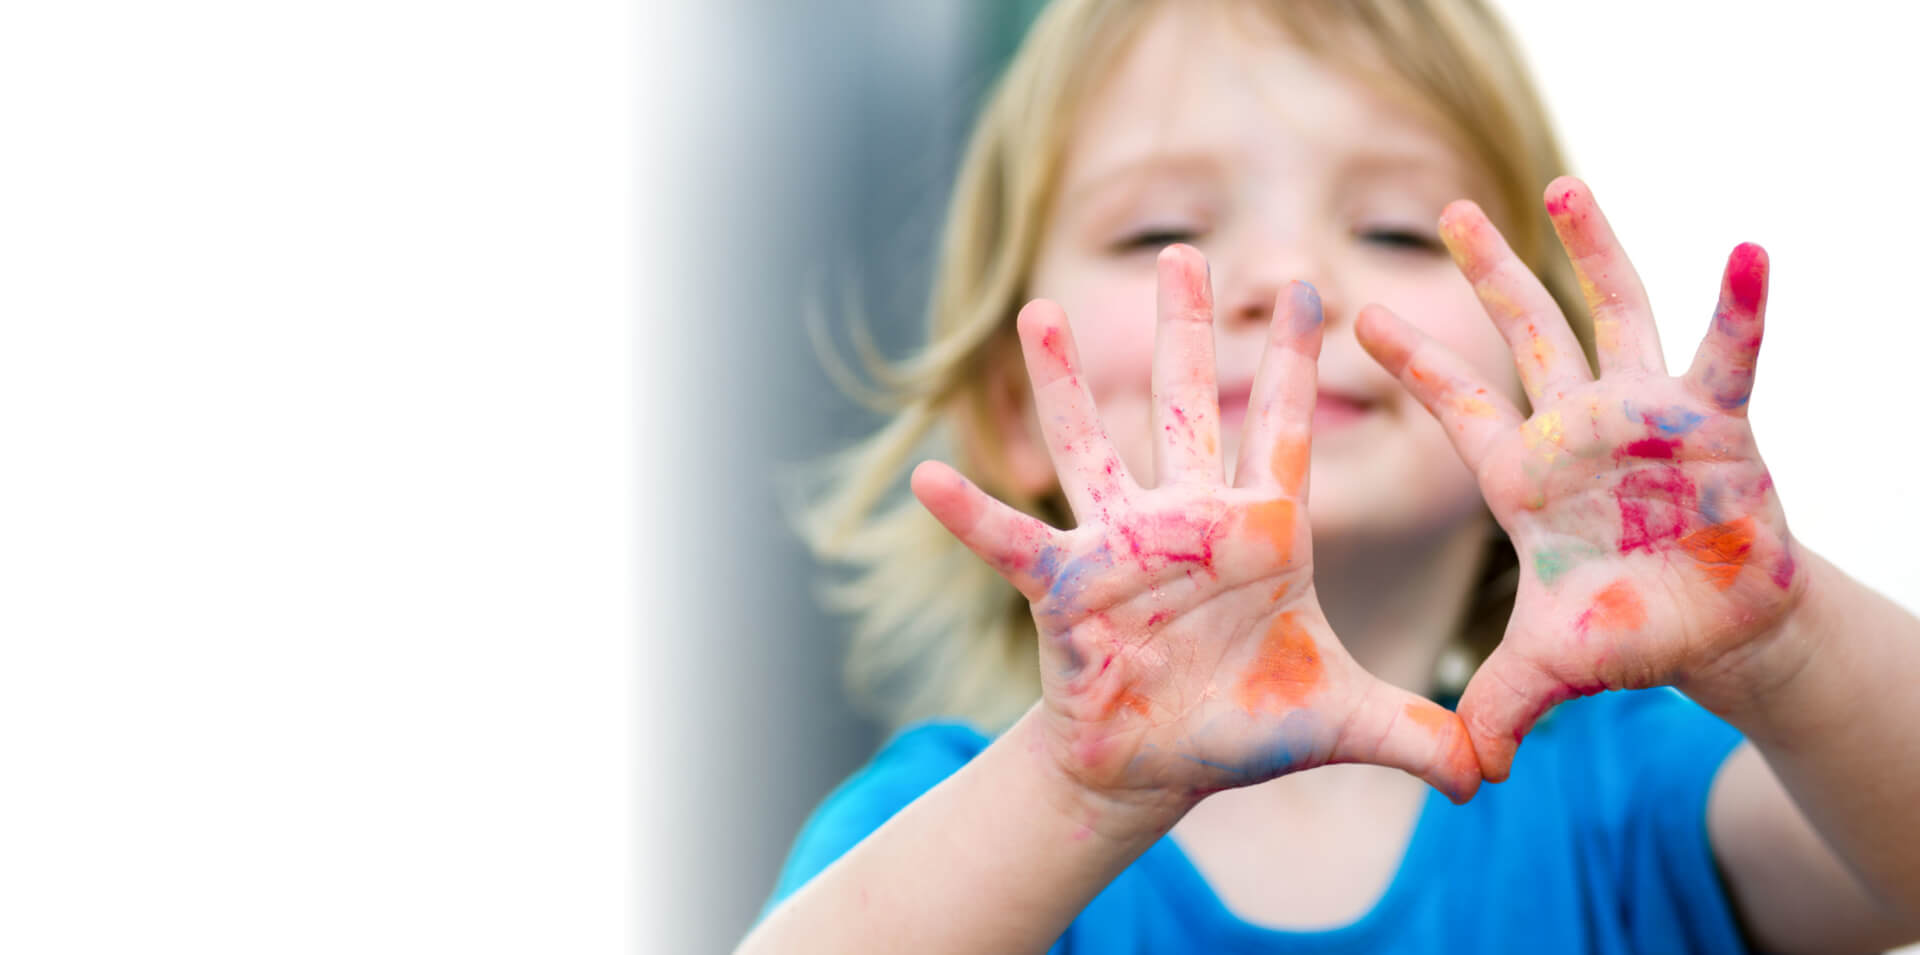 Cute preschooler girl with smile showing colored hands